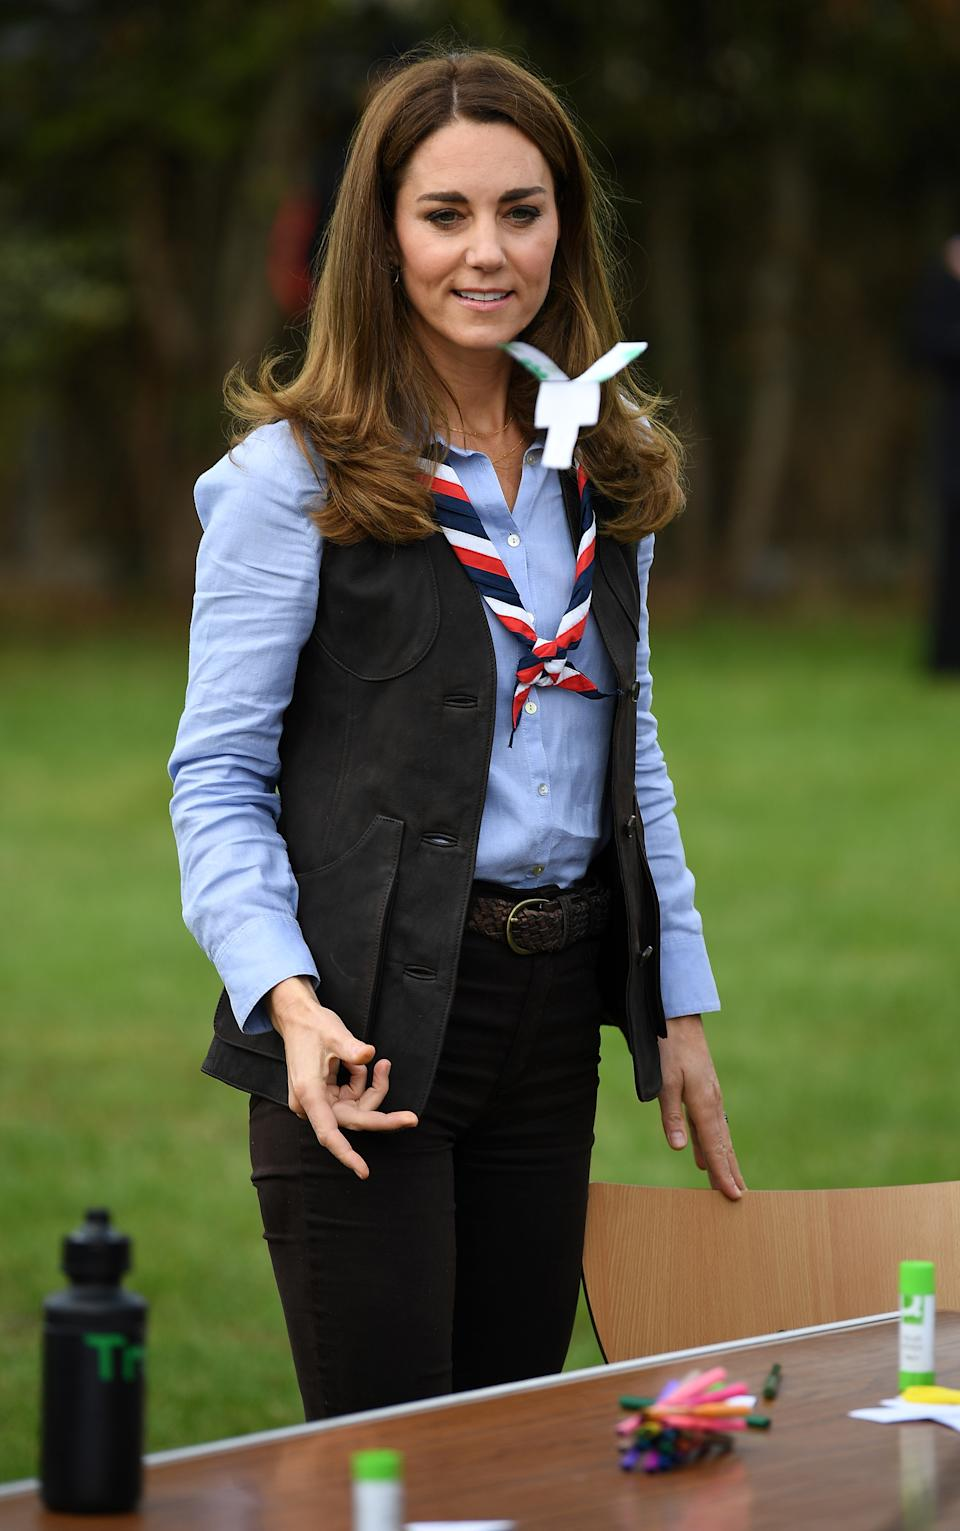 LONDON, ENGLAND - SEPTEMBER 29: Catherine, Duchess of Cambridge plays with a paper toy as she visits with members of the Beavers as she visits a Scout Group in Northolt, northwest London where she joined Cub and Beaver Scouts in outdoor activities on September 29, 2020 in London, England. The Duchess learned how the Scouts have adapted during the COVID-19 pandemic, and continued Scouting sessions and online activities. (Photo by Daniel Leal-Olivas - WPA Pool/Getty Images)